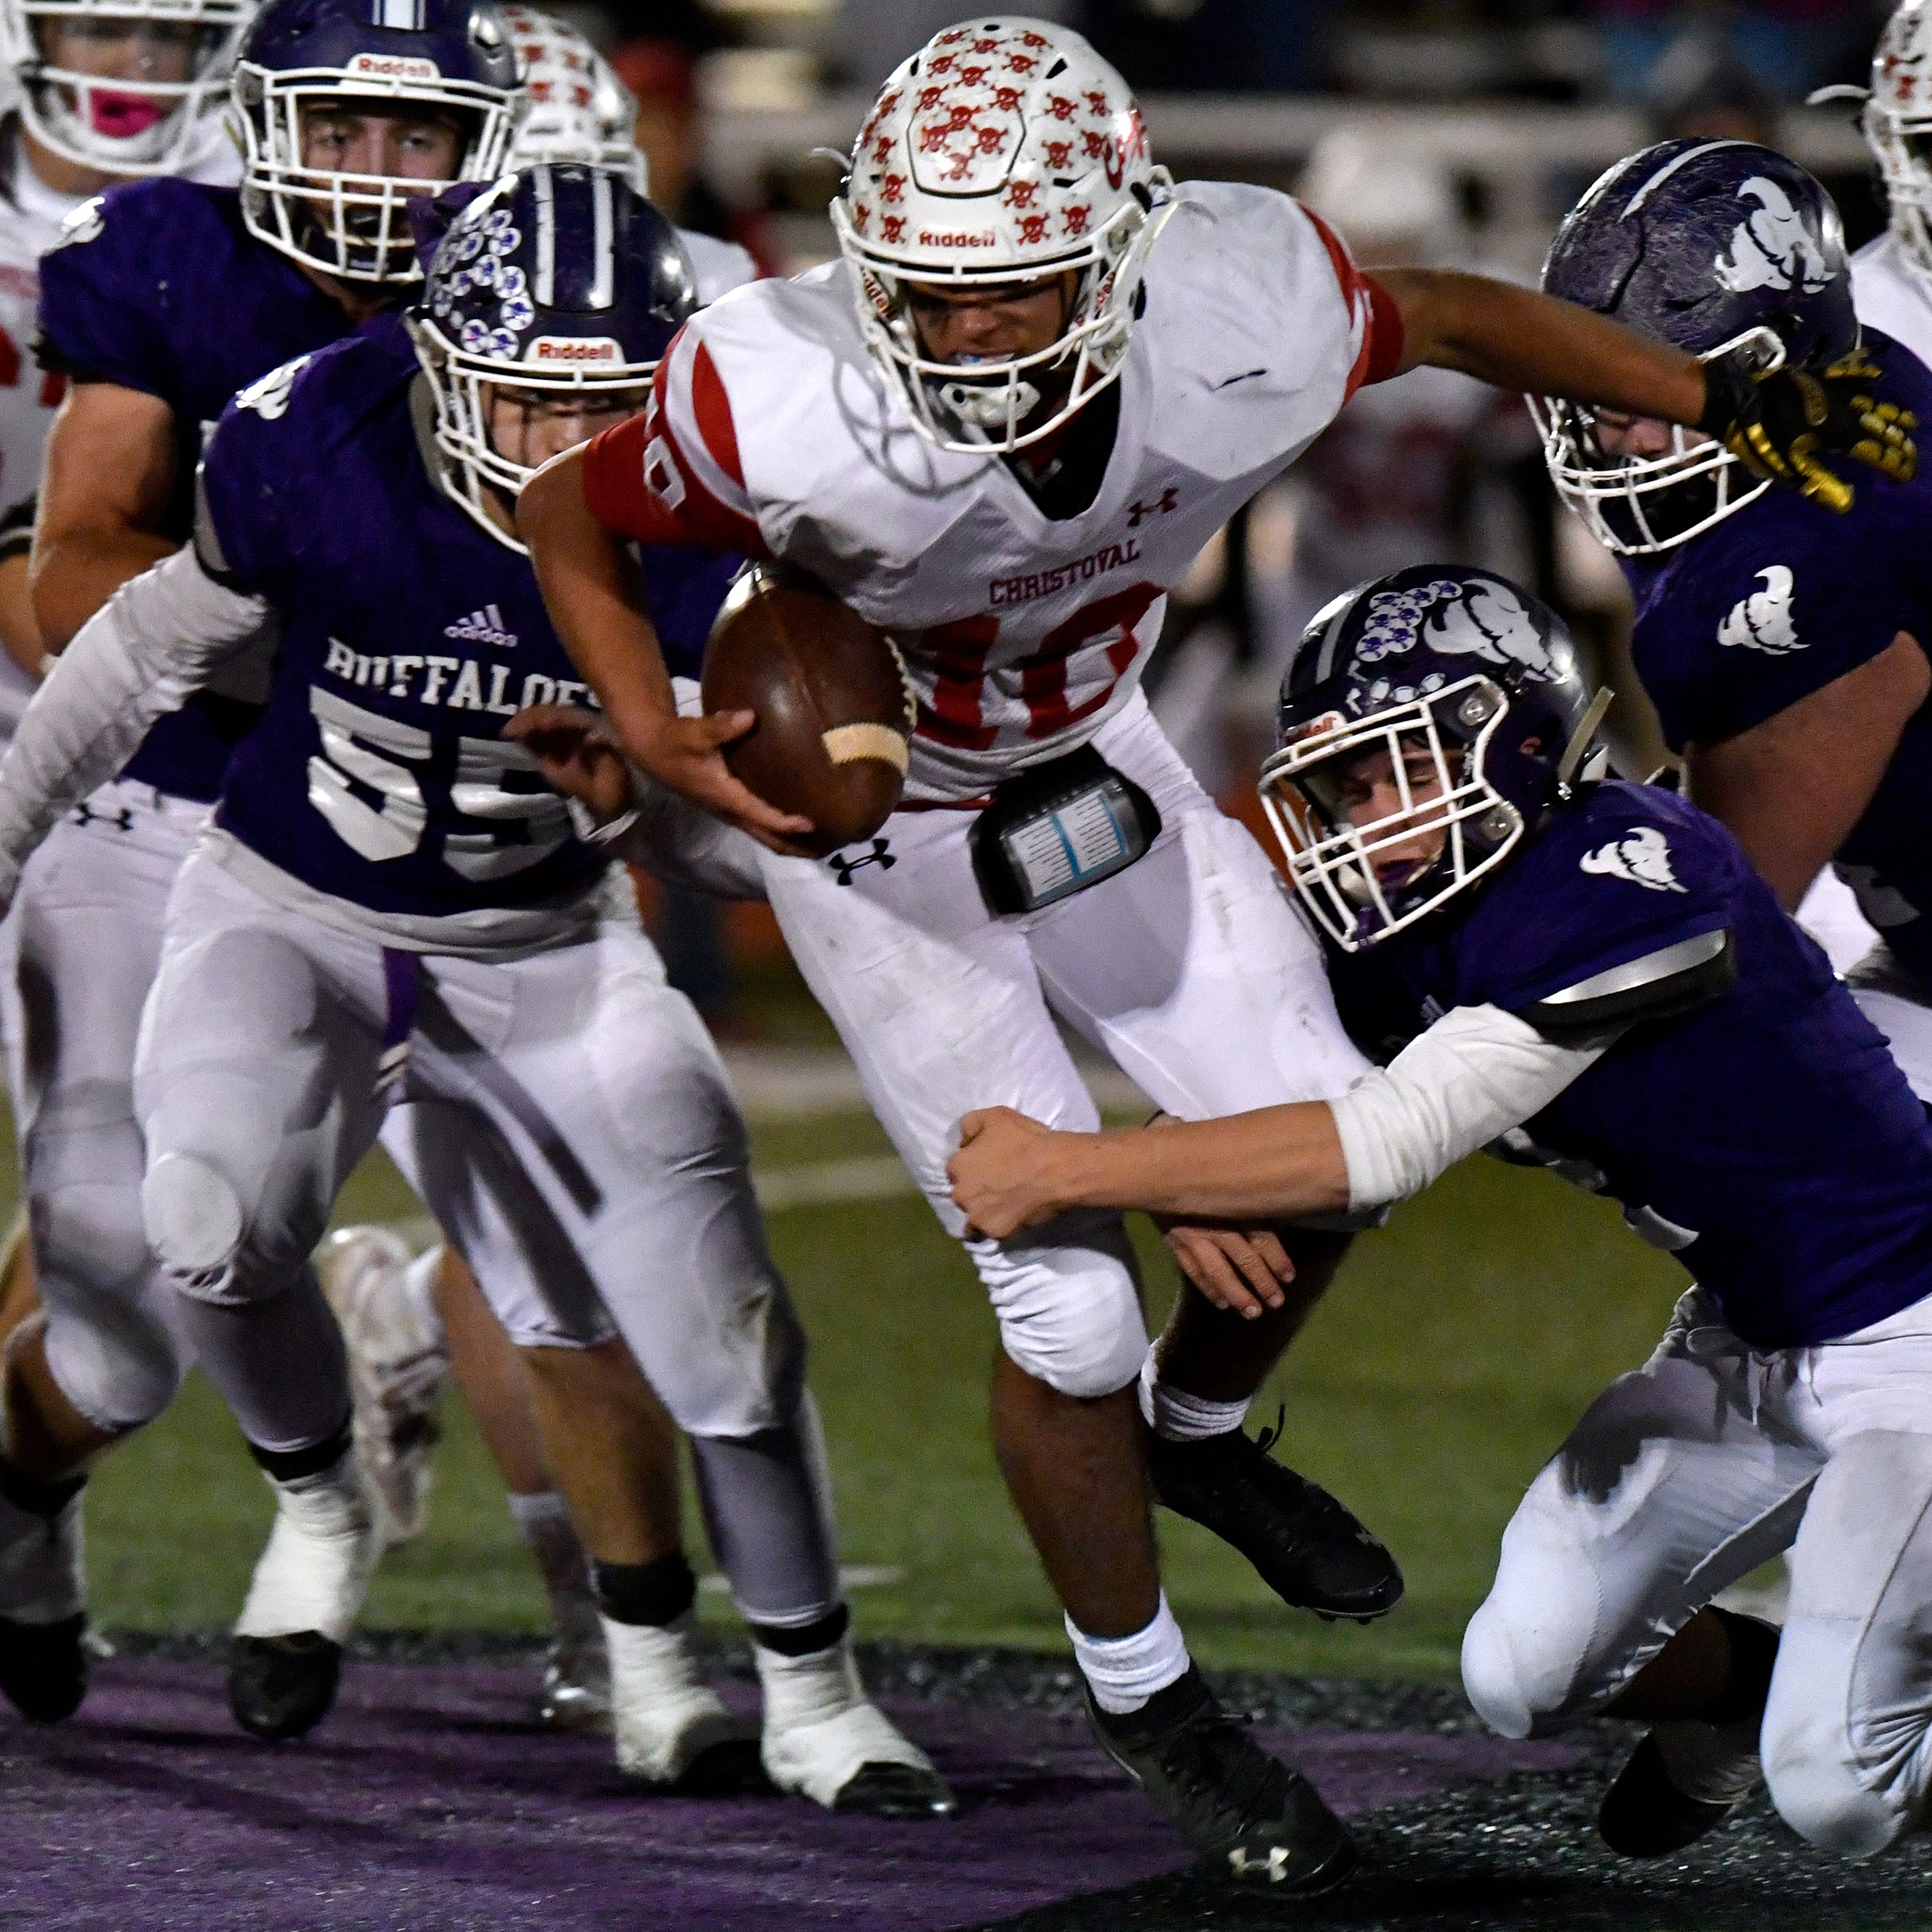 Texas high school playoff scores, pairings for area games